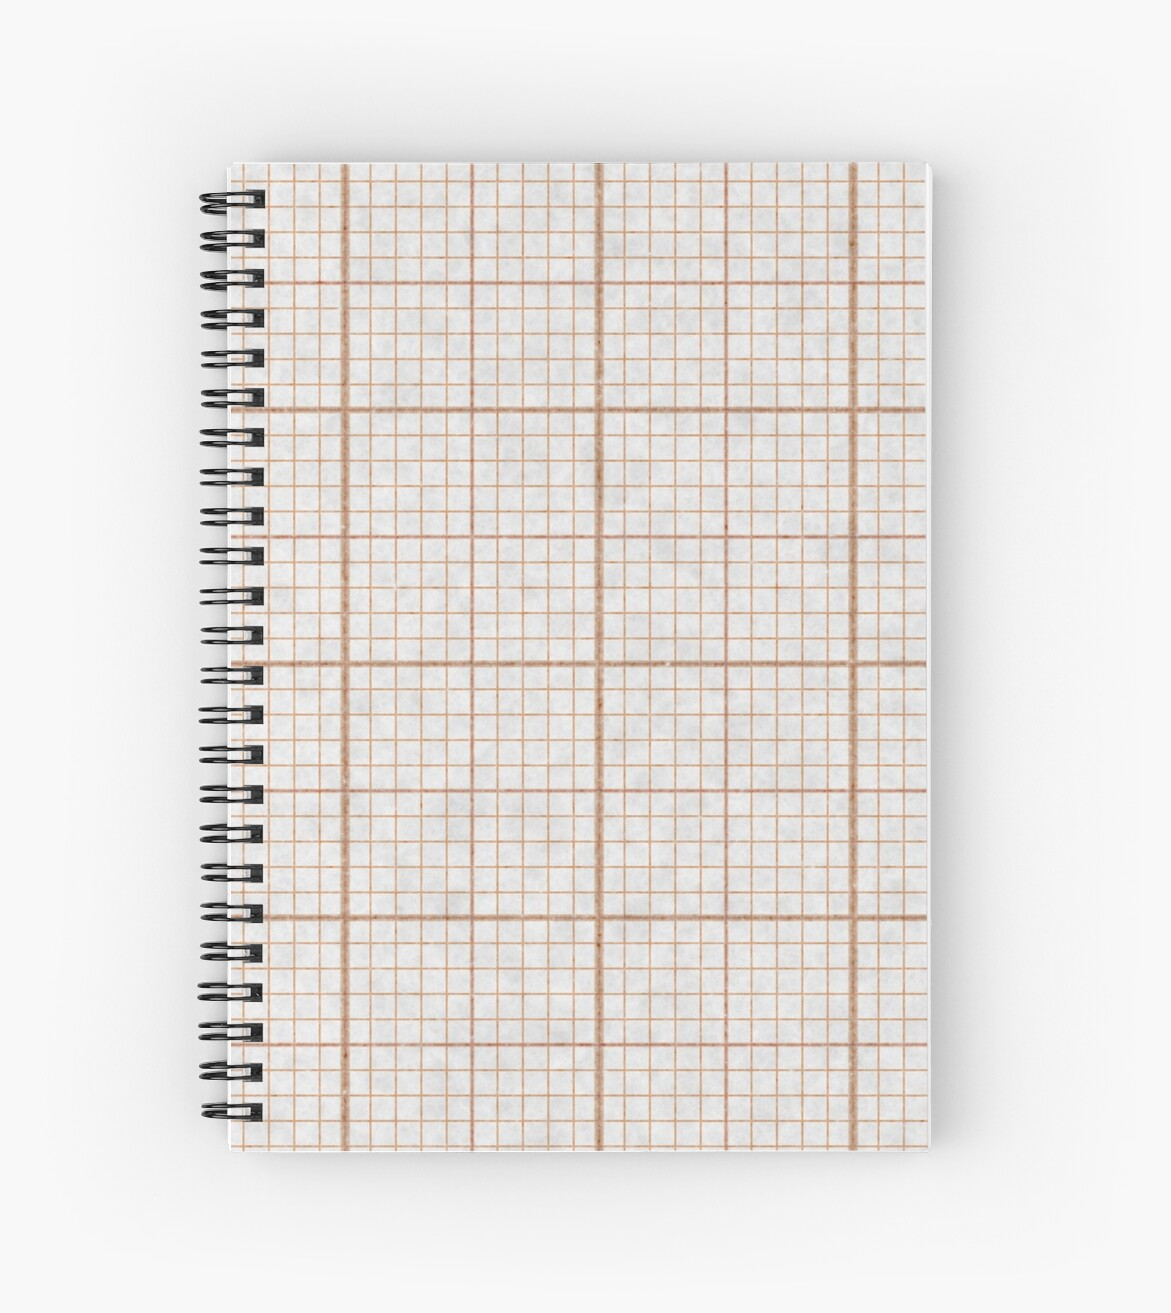 red millimeter paper spiral notebooks by alexander nedviga redbubble